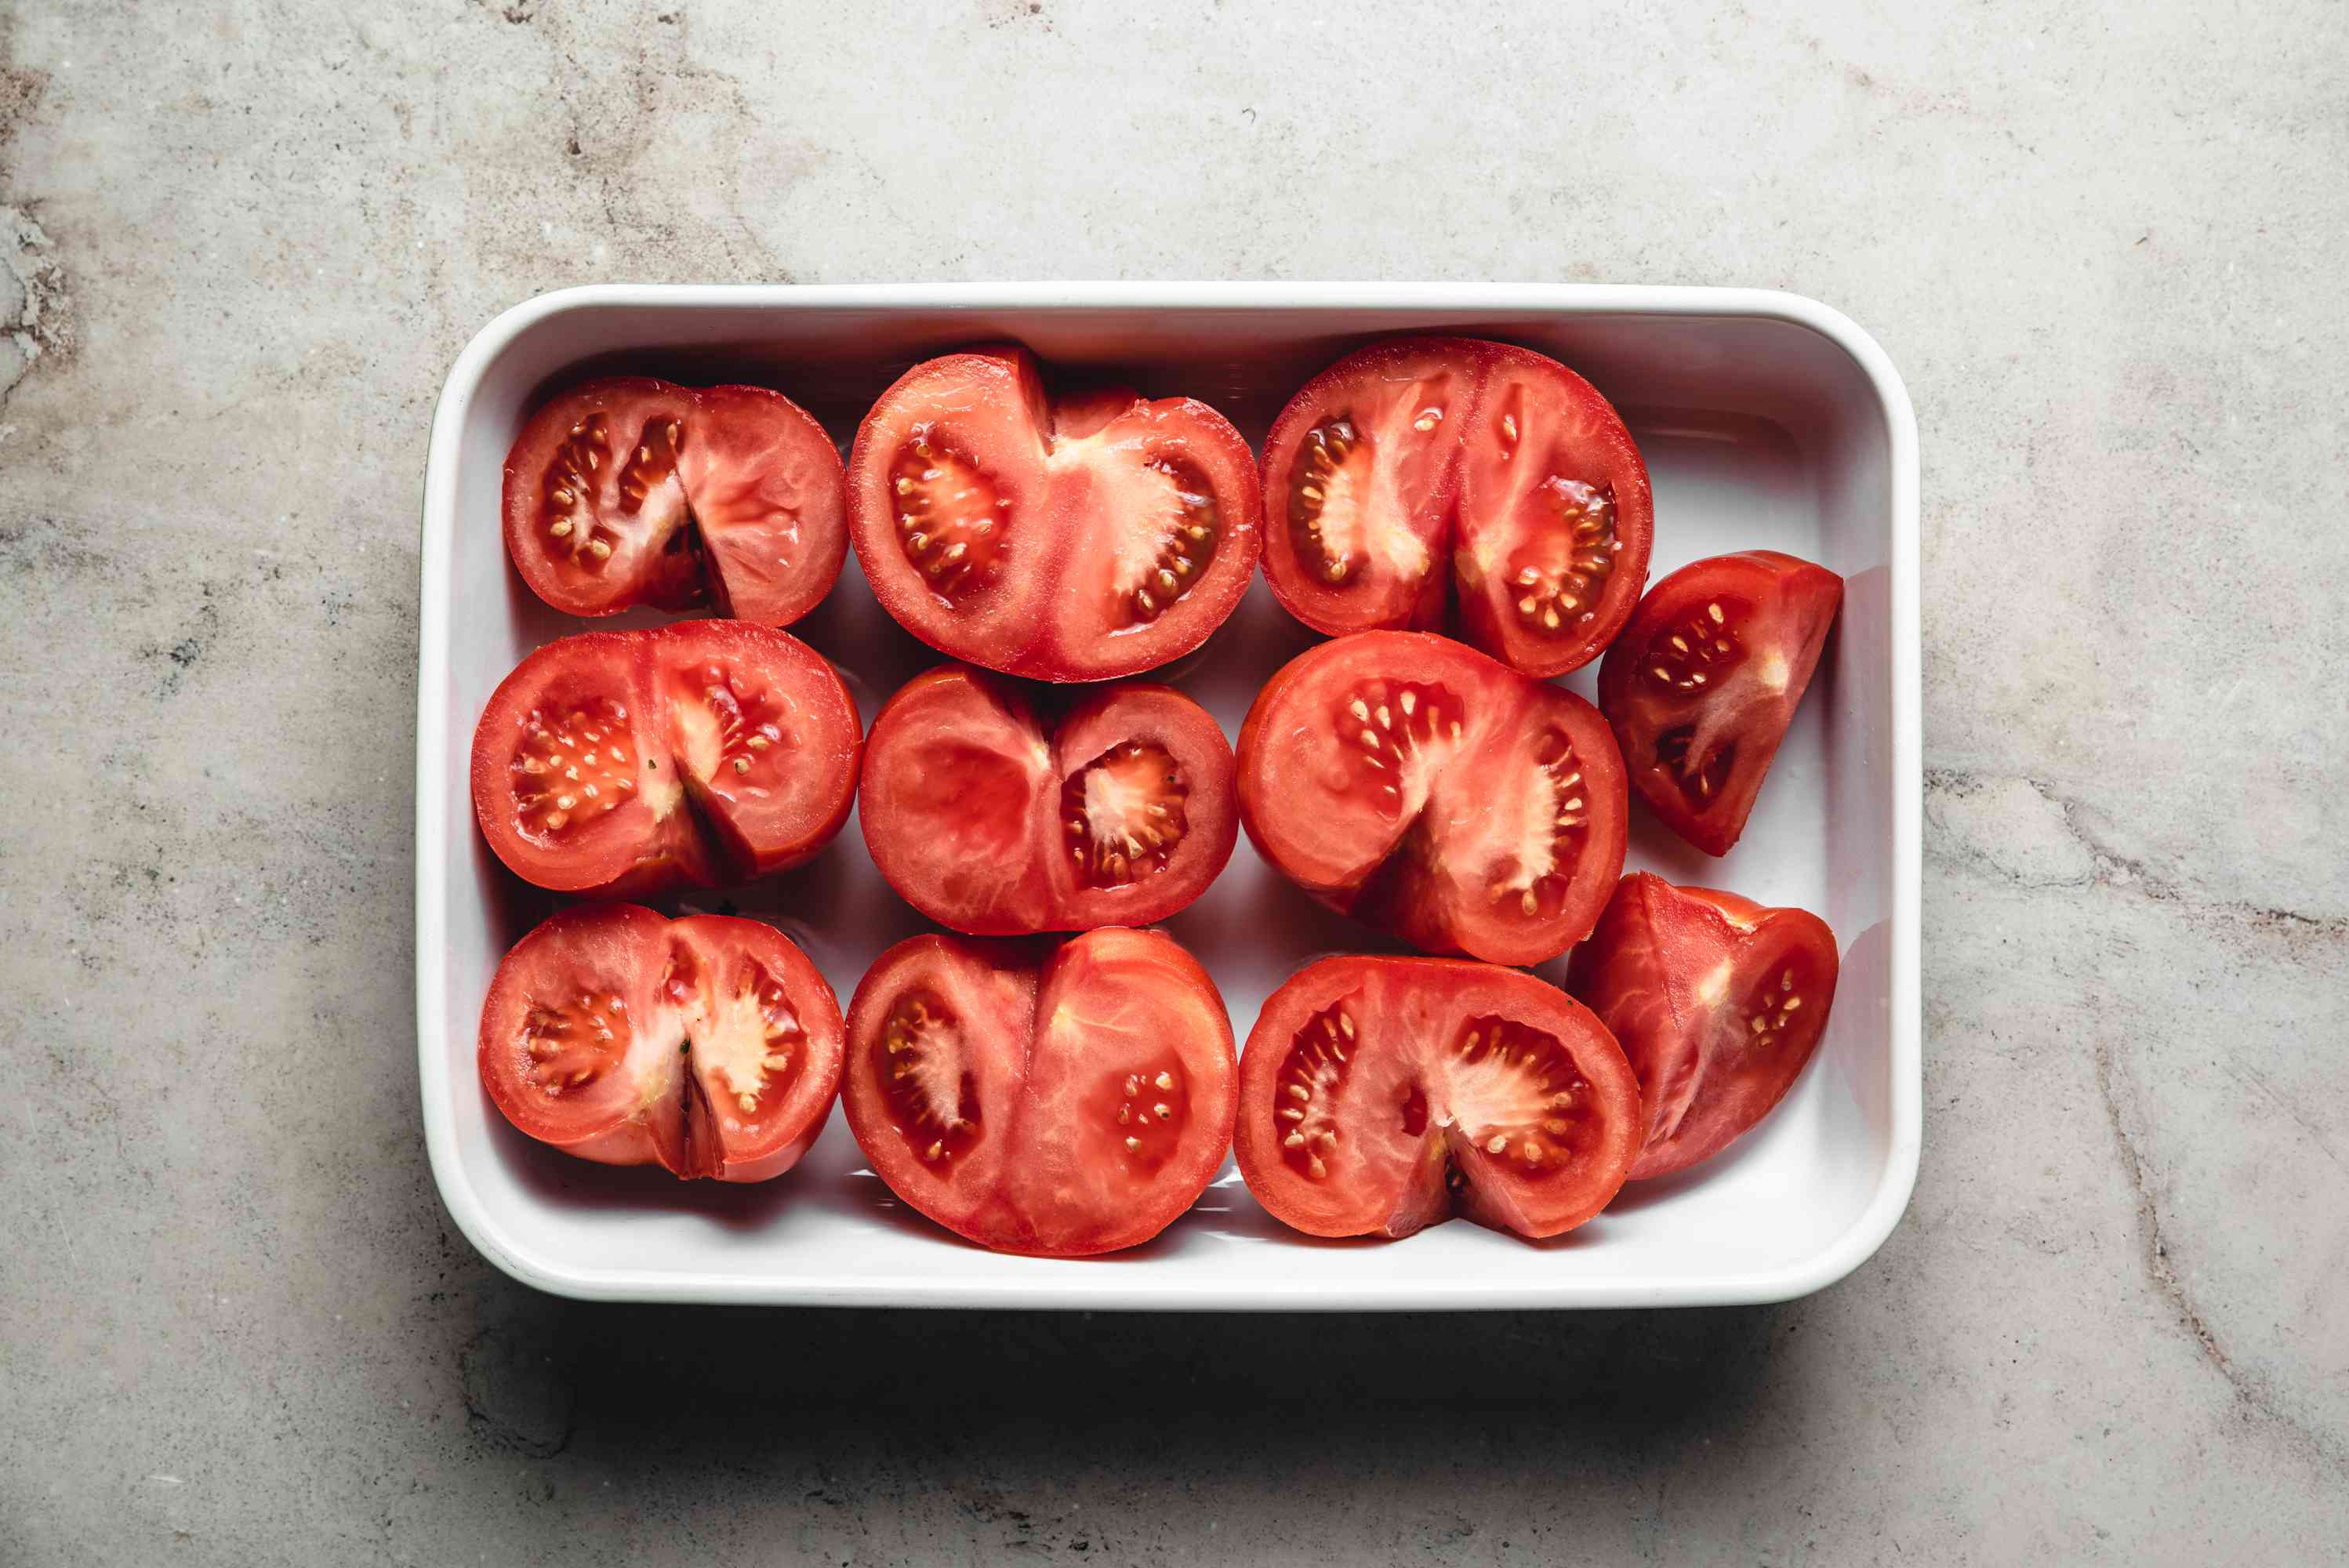 tomatoes in a baking dish